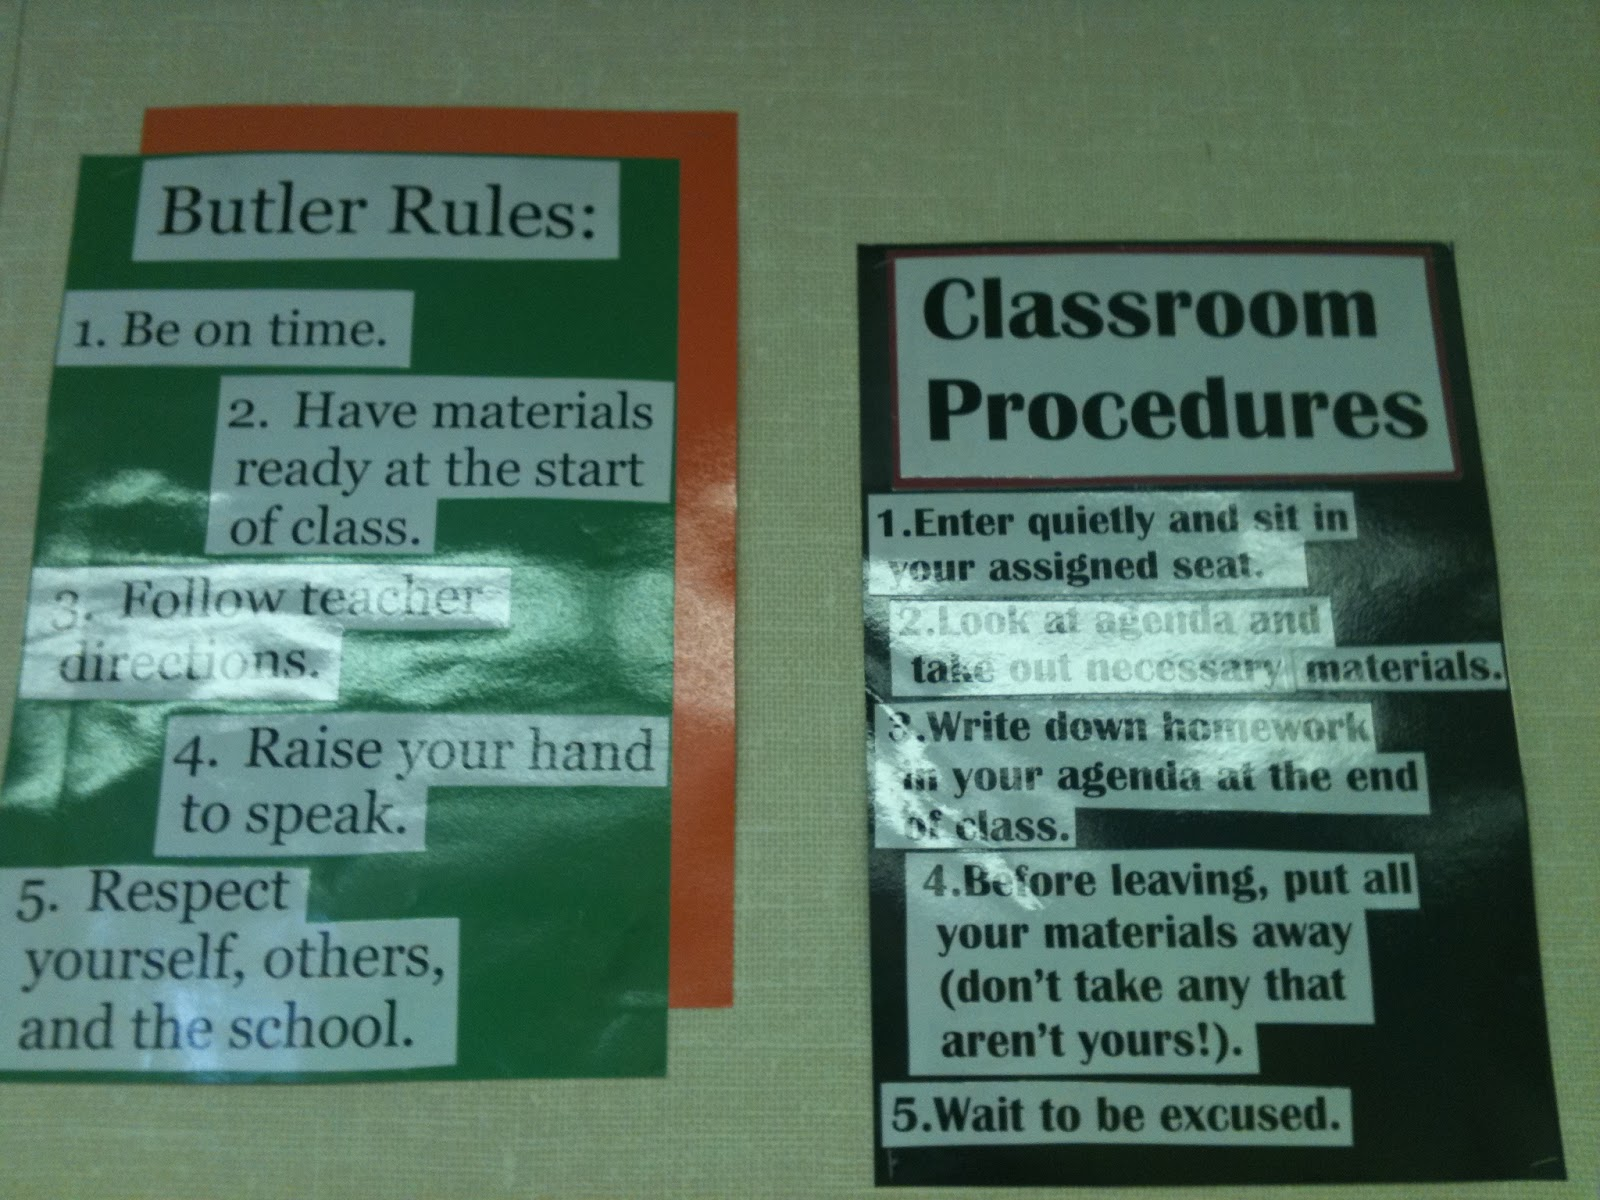 Elementary Classroom Procedures : High school classroom rules and procedures pictures to pin